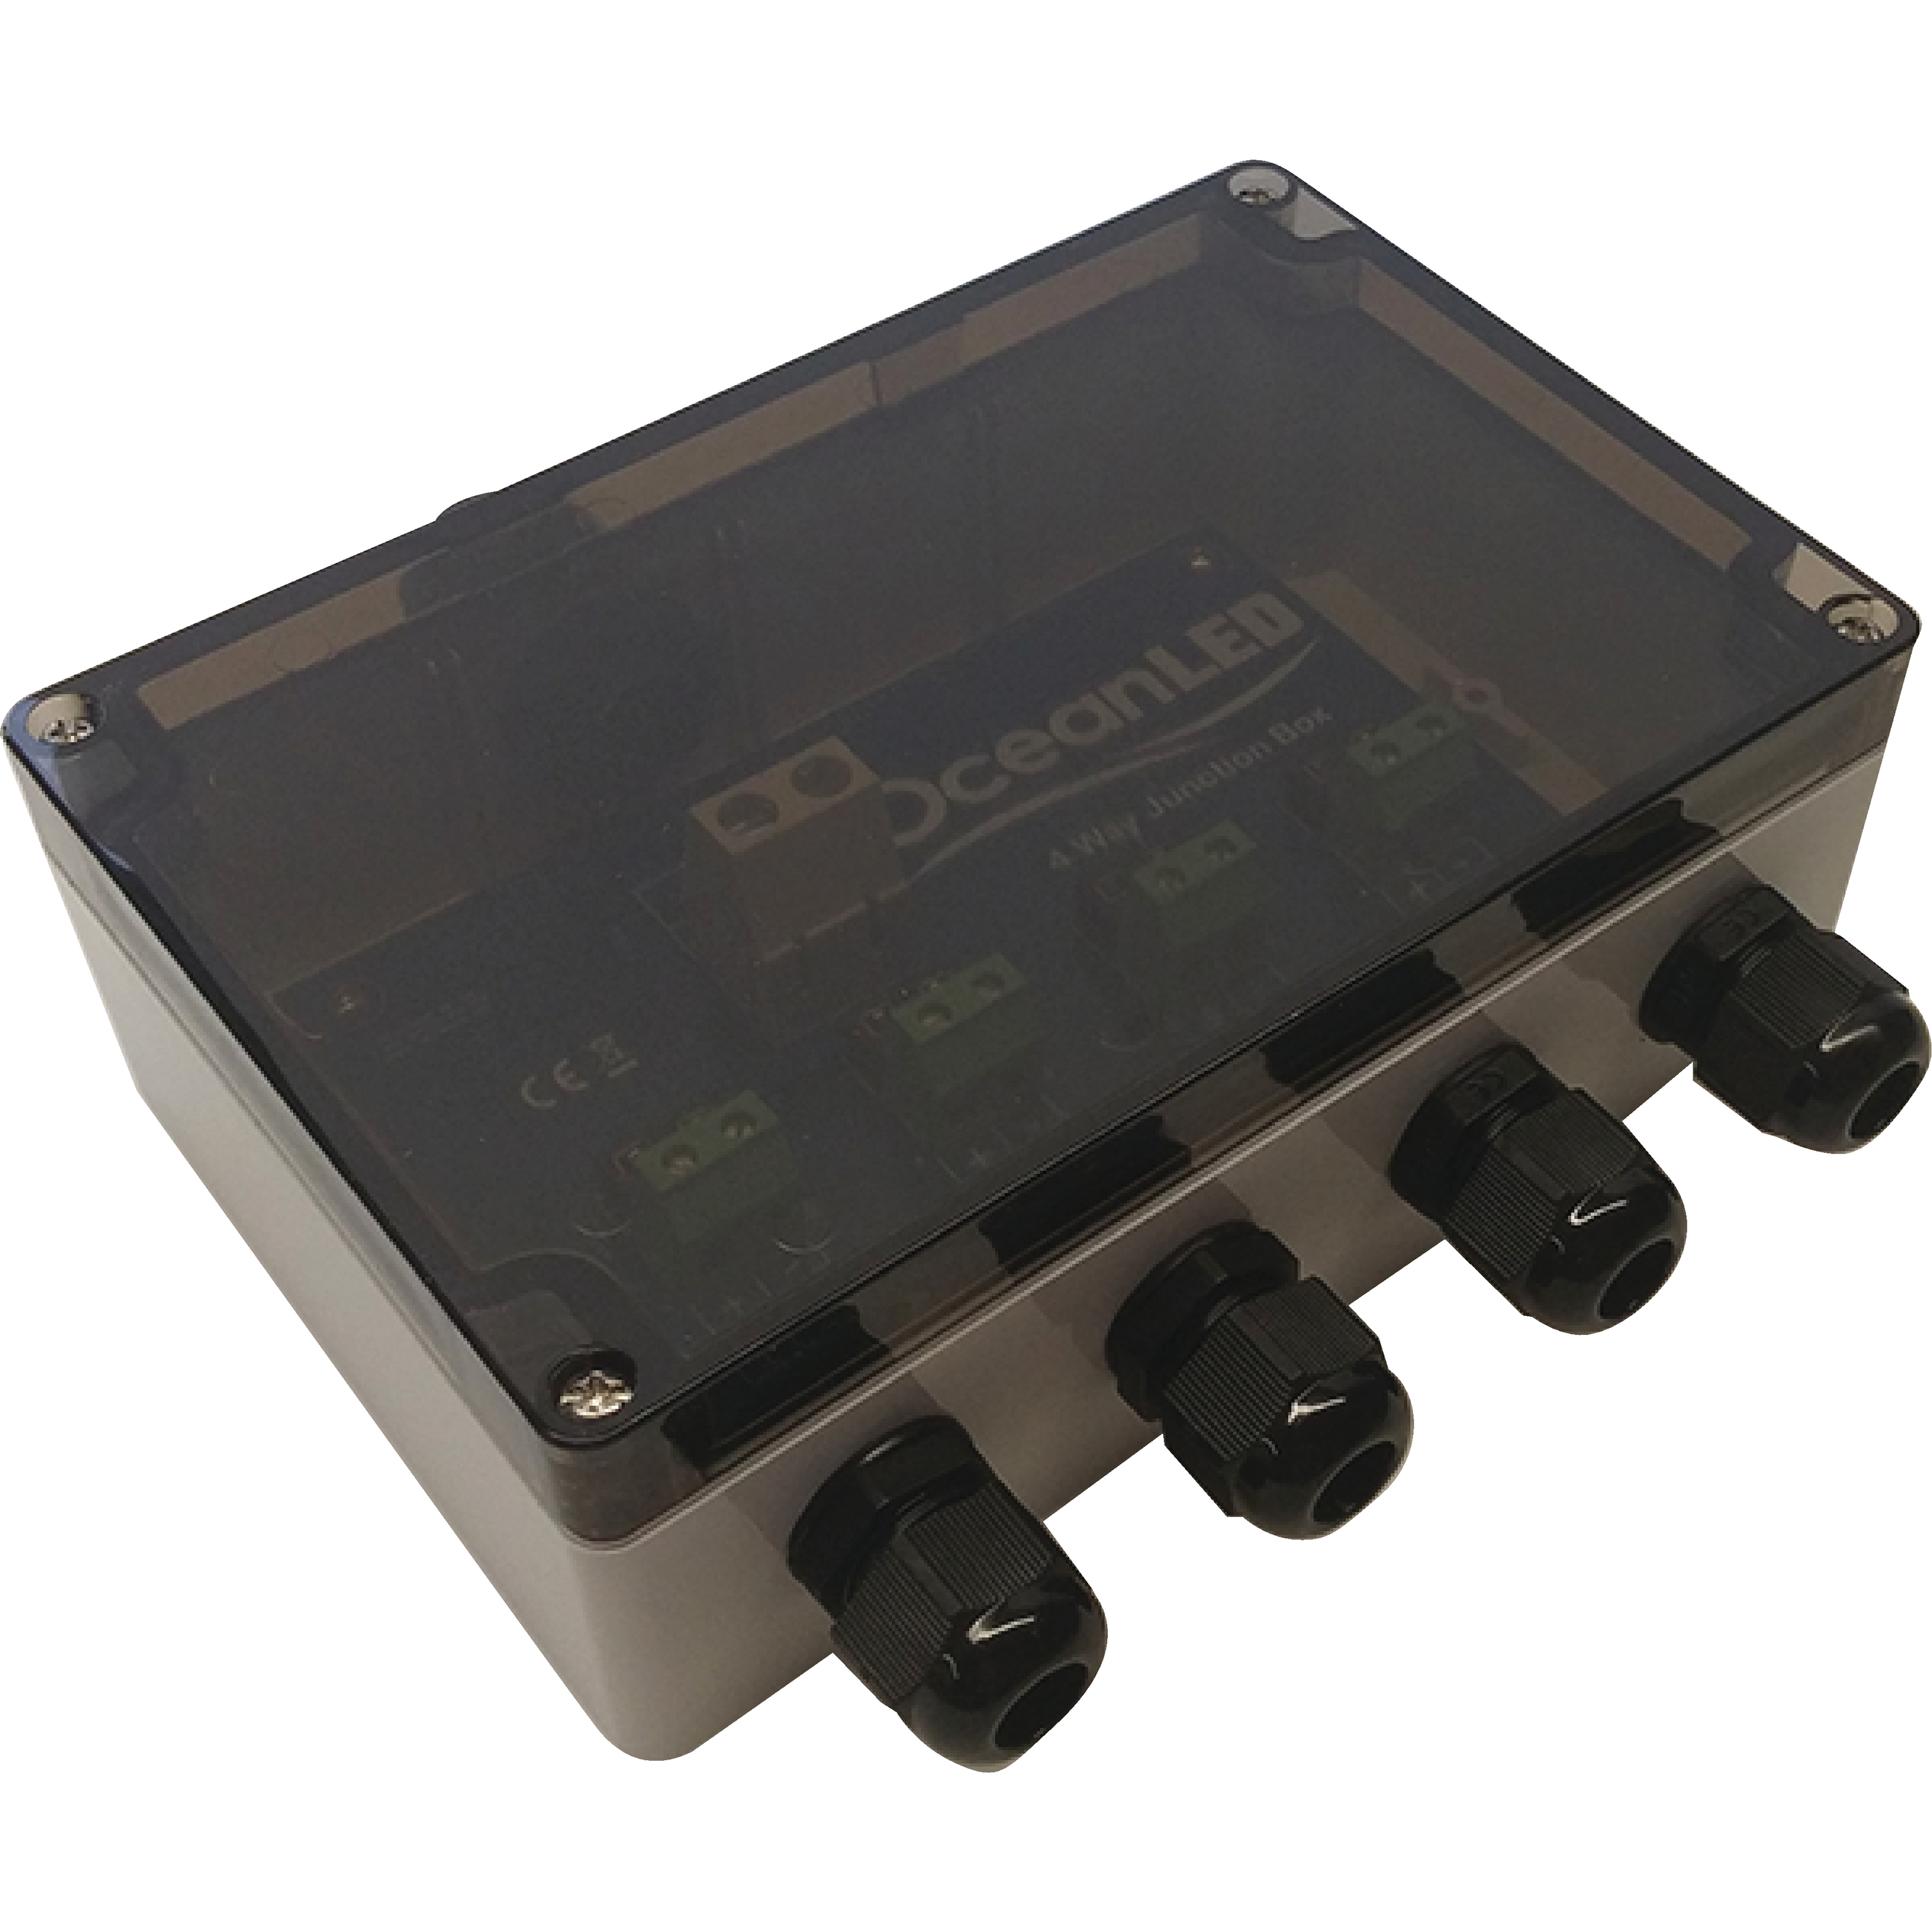 Ocean LED 019901 Standard 12/24V 4-Way Junction Box